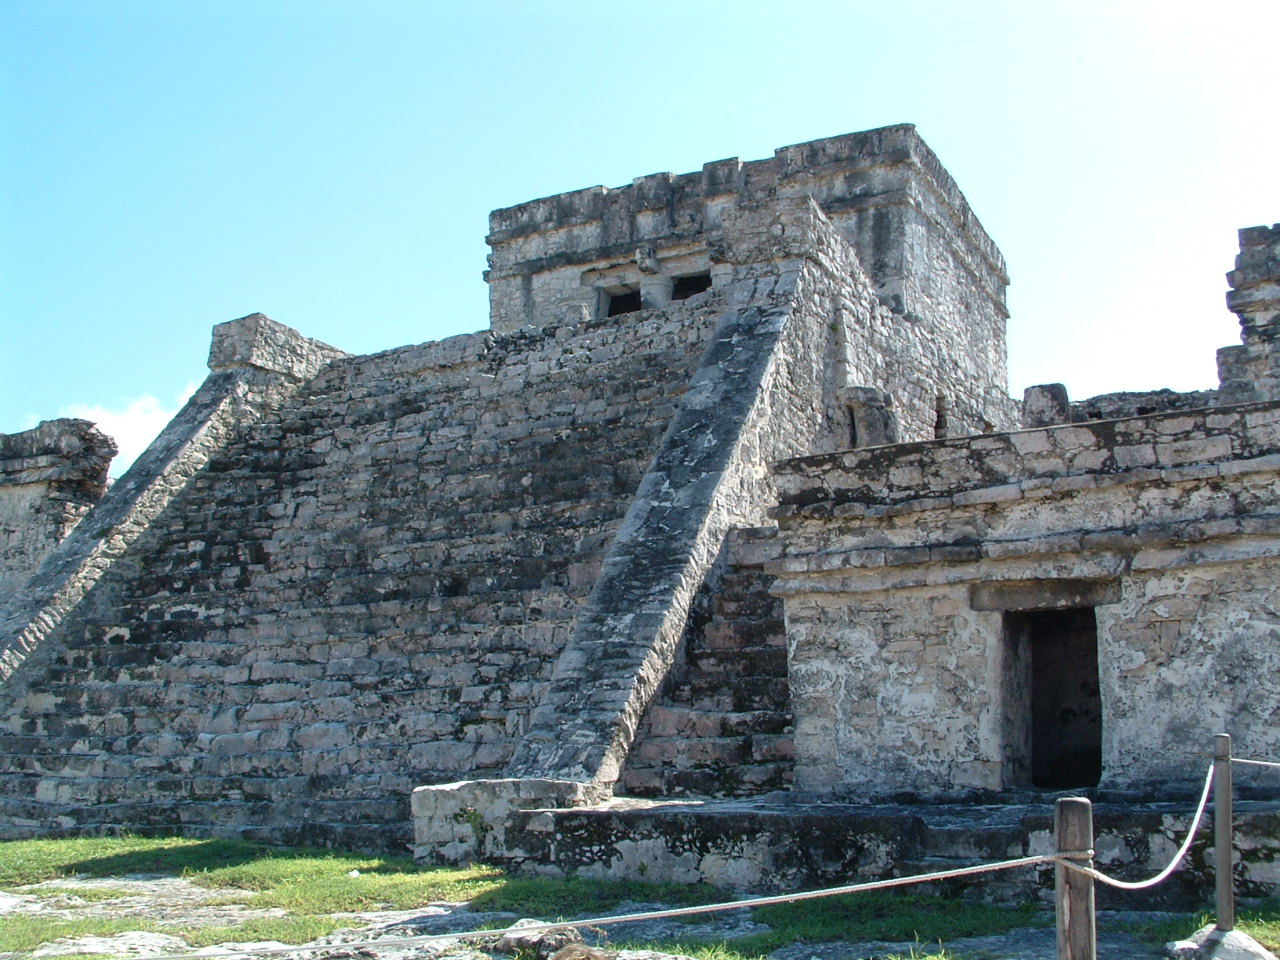 Ancient Mayan Temples at Tulum